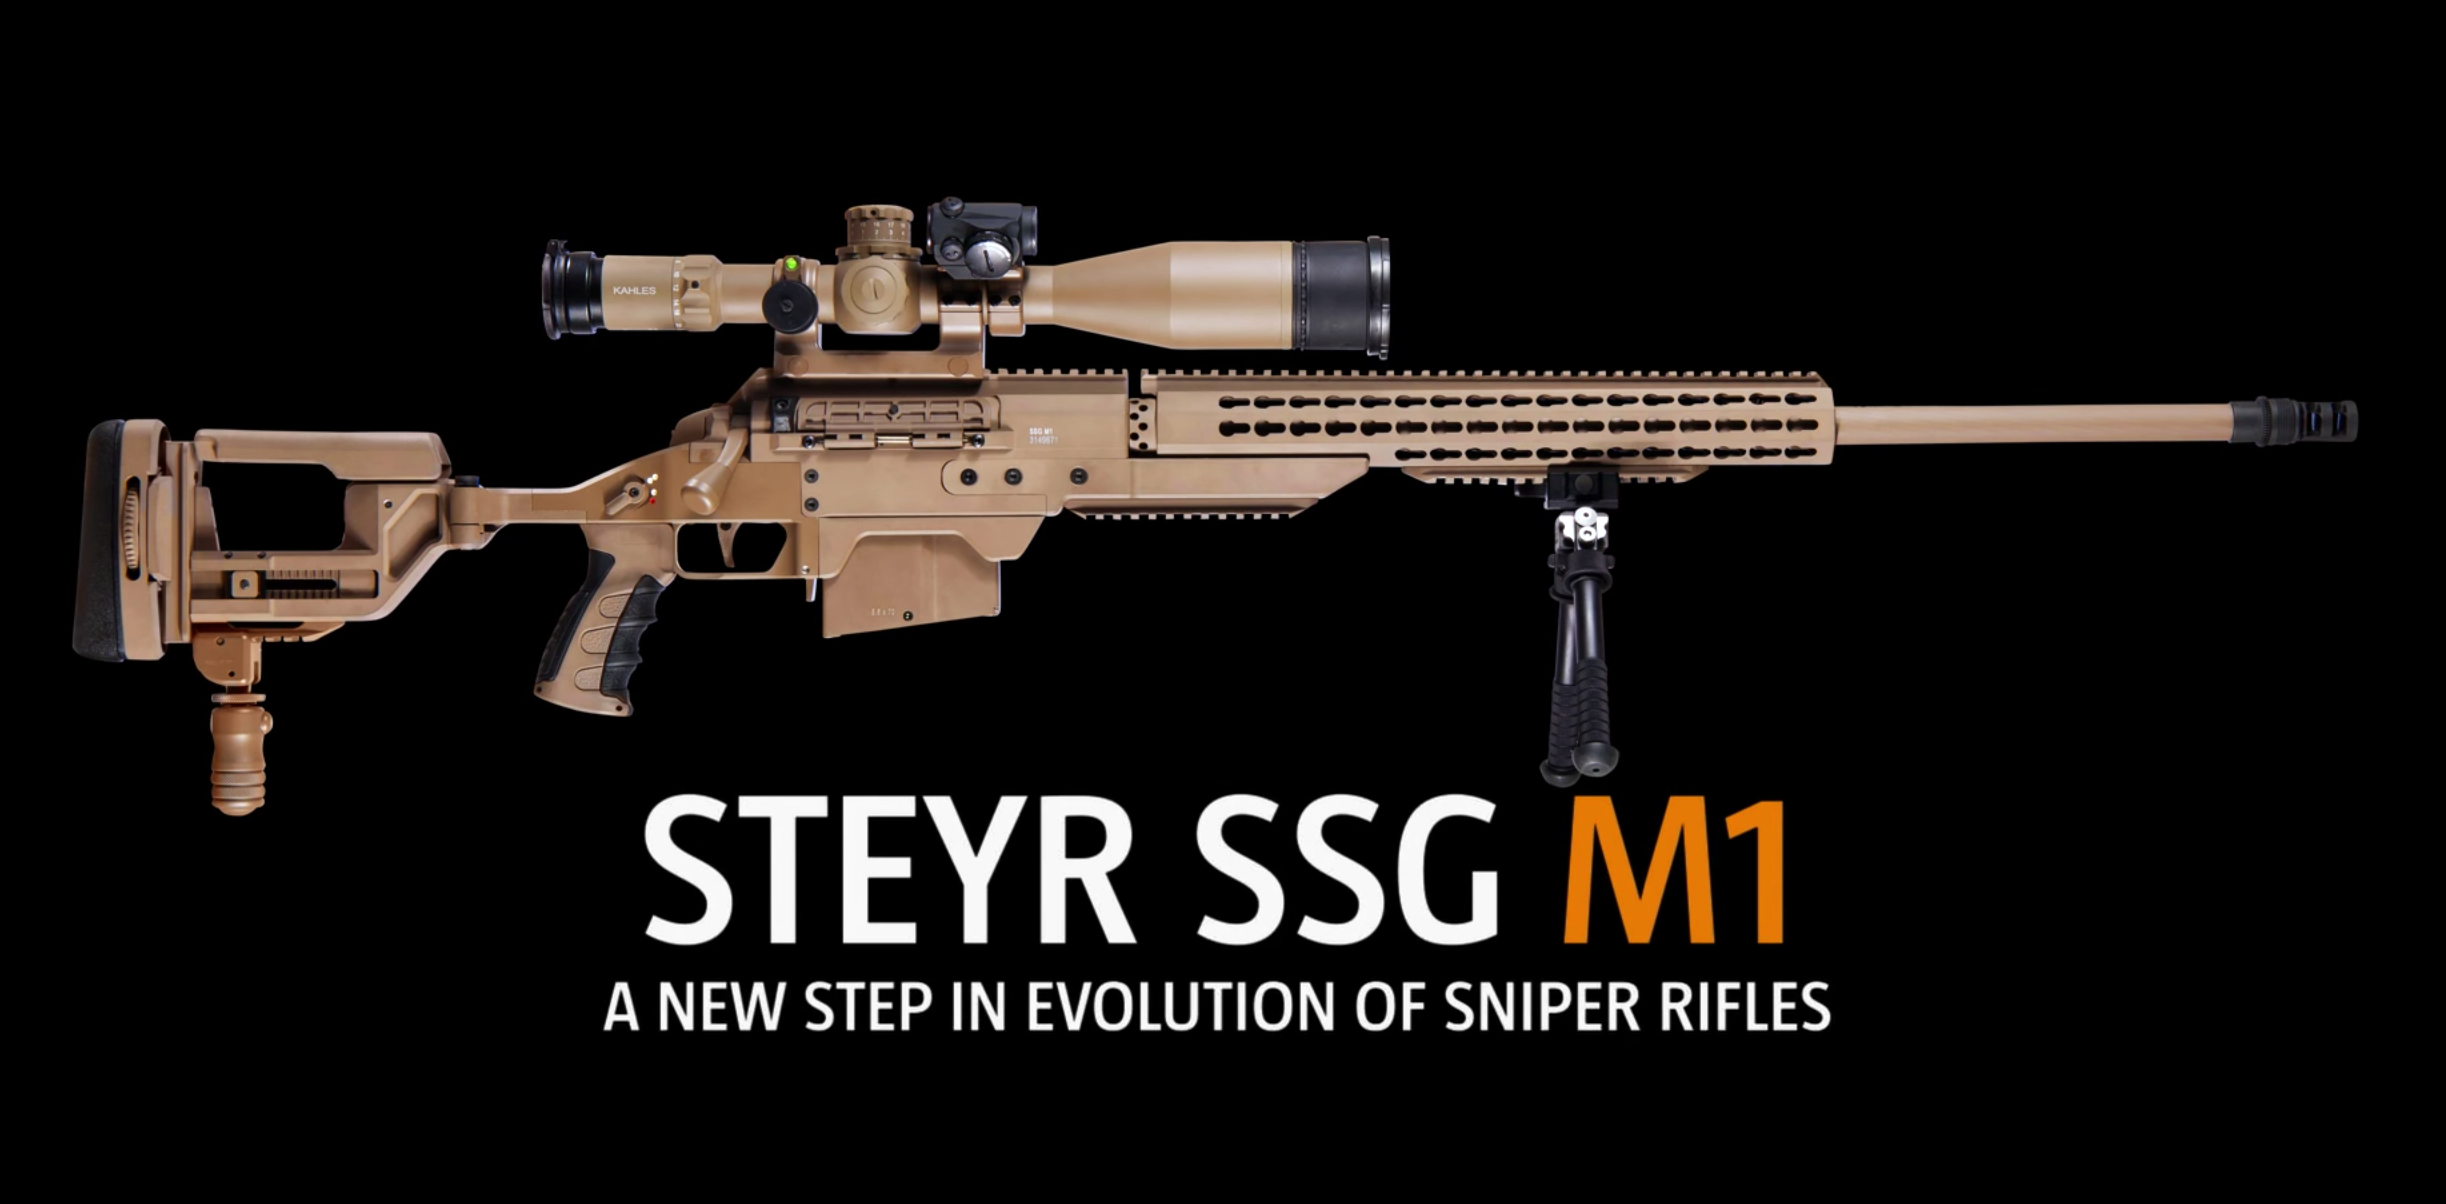 (Enforce Tac 2018) New Steyr Mannlicher SSG M1 Precision Rifle